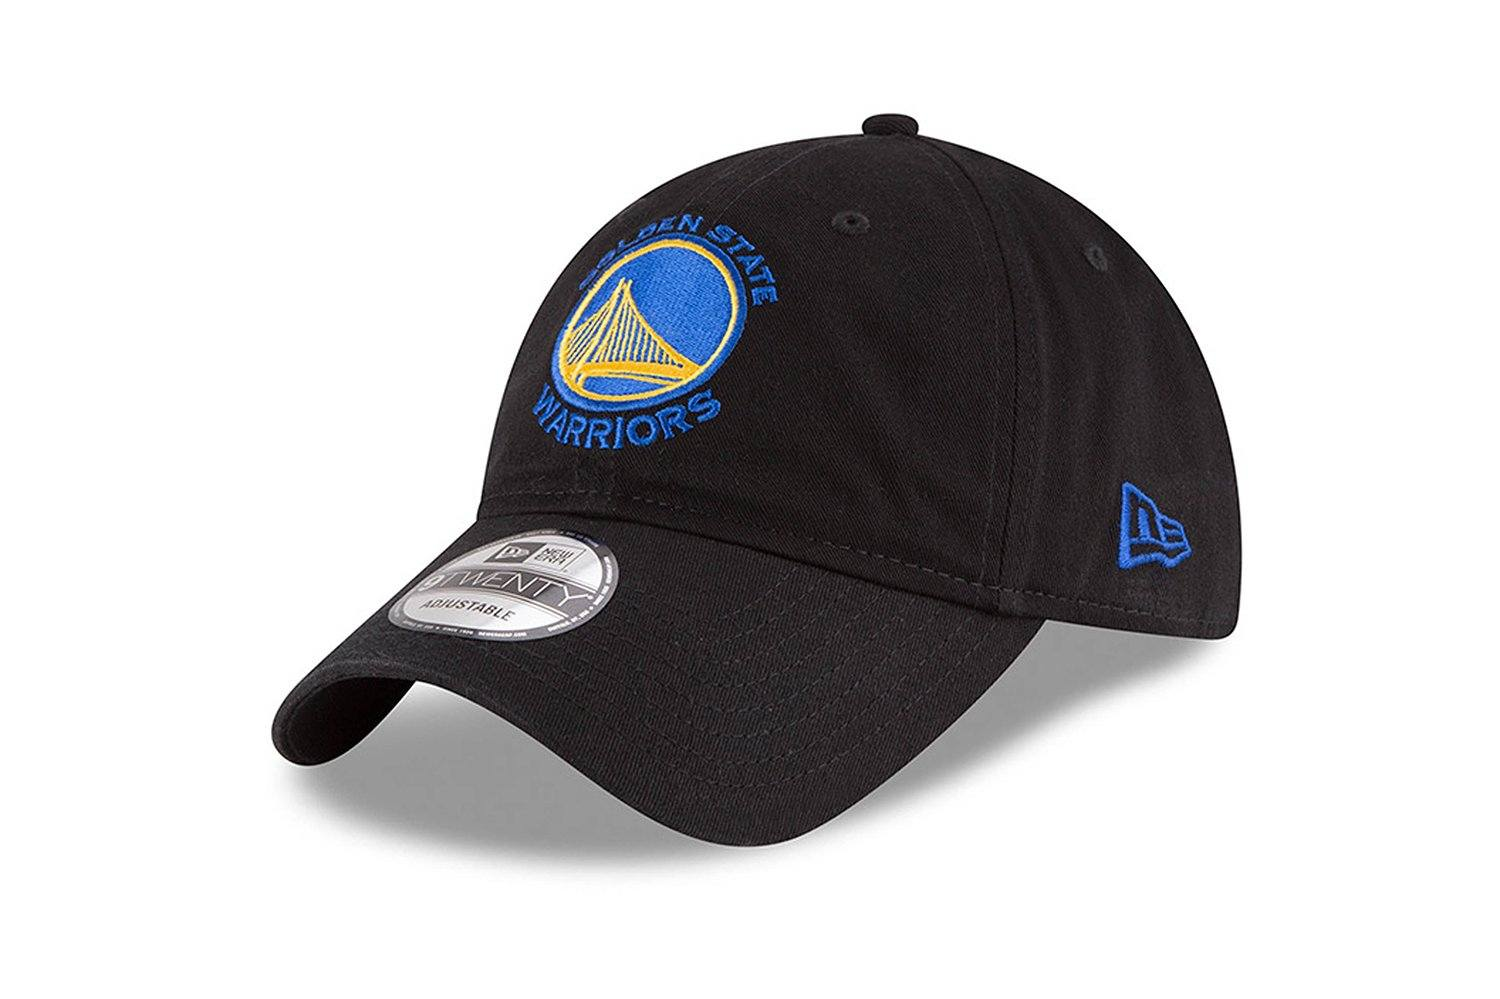 CORE CLASSIC TW GOLDEN STATE WARRIORS HAT HATS NEW ERA